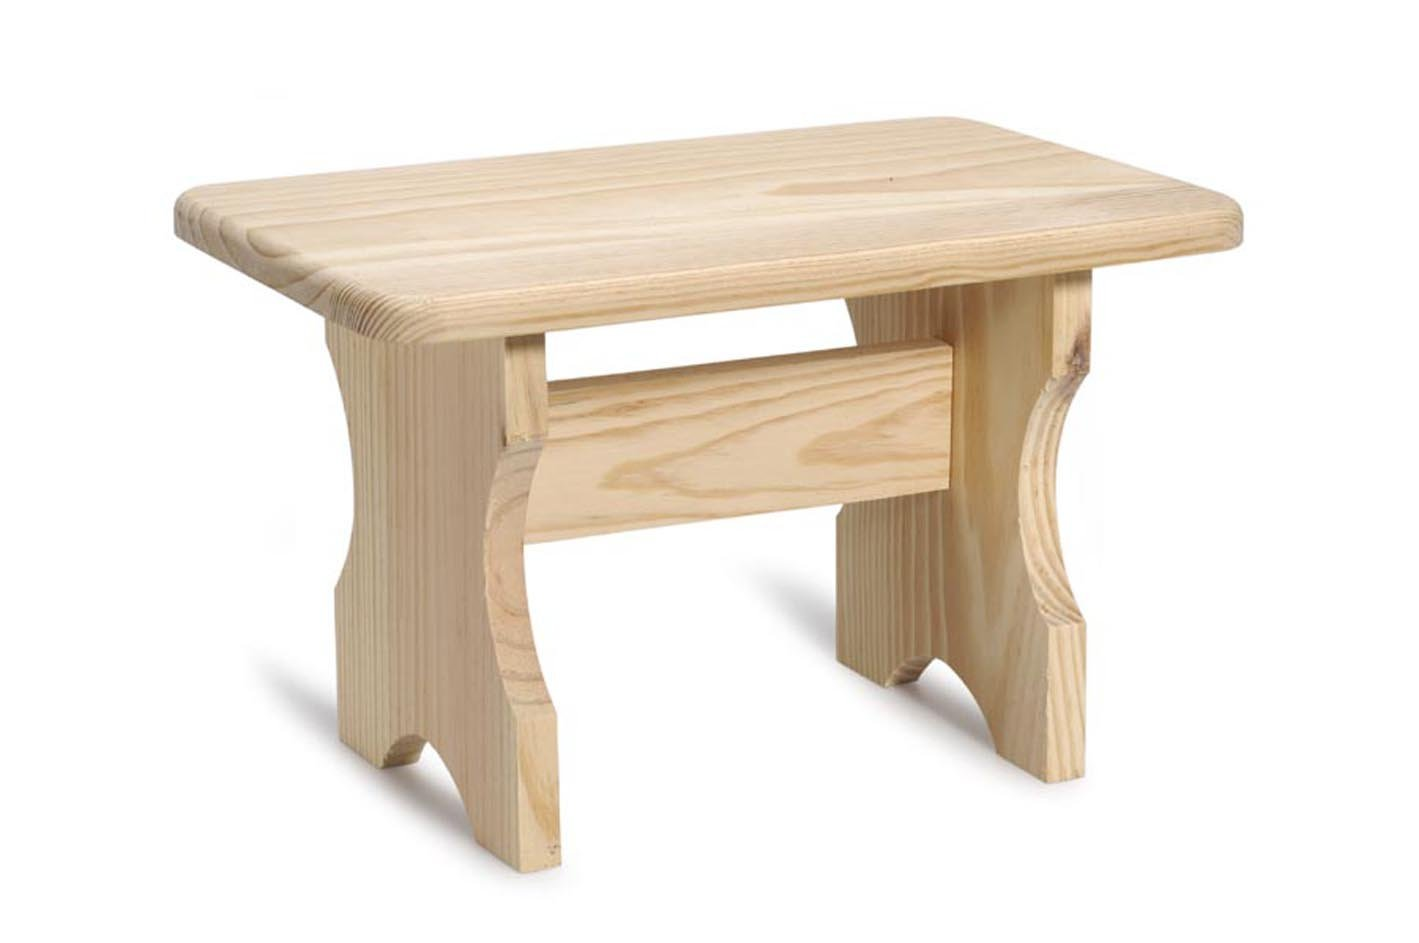 Darice Decorative Unfinished Wood Stool: Pine, 7.5 Inches Tall 91301